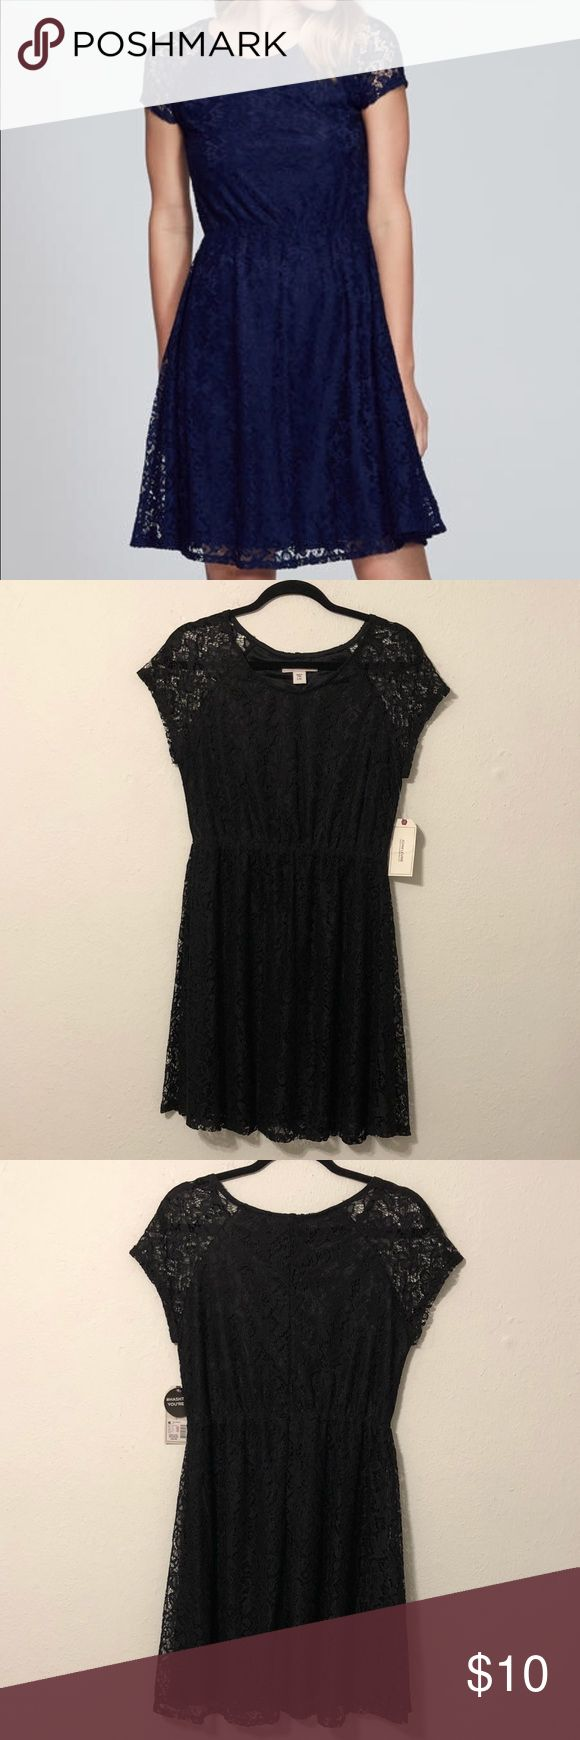 Adam Lavigne Black Dress NWT Black Lace Dress! Measurements are Length 36 1/2, Bust 17 Inches, Waist 15 Inches Adam Levine Collection Dresses Midi